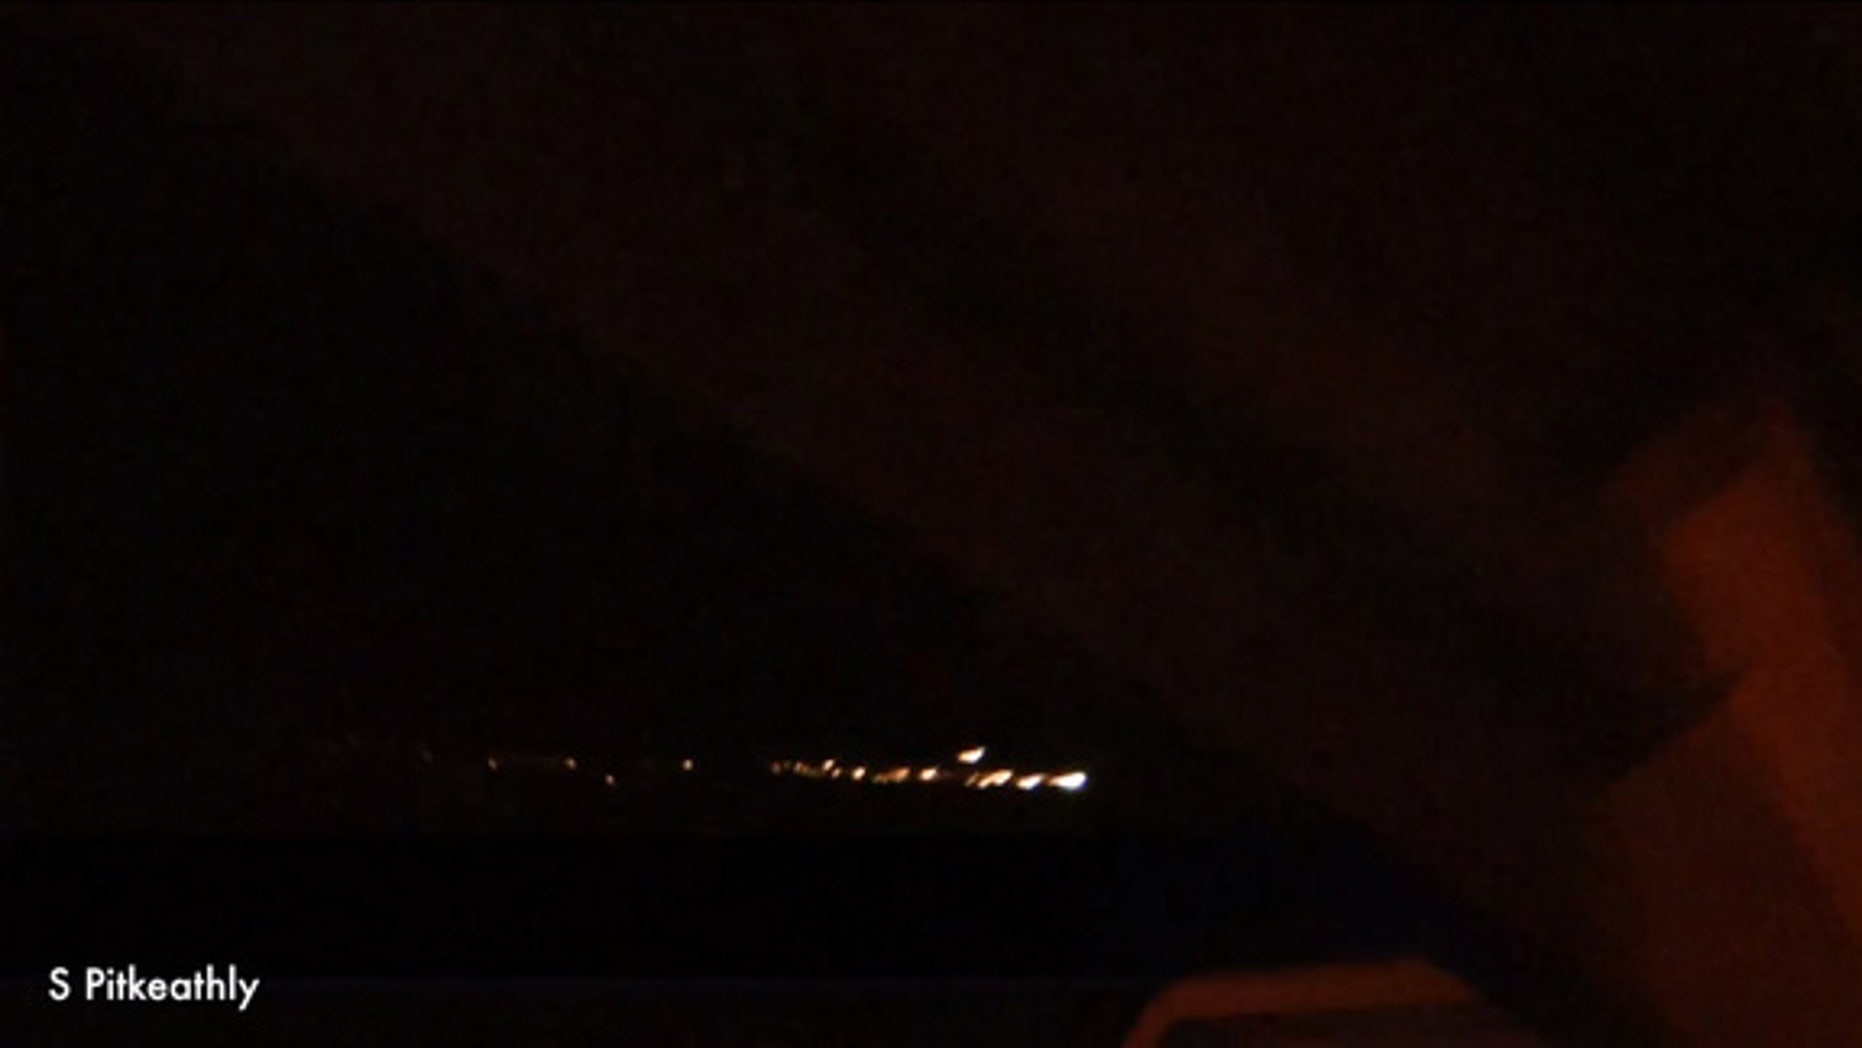 Night sky watcher Stuart Pitkeathly posted a video online reportedly showing a meteor breaking up over Dalbeattie, Scotland, in this southwestern part of the country. Video posted on YouTube September 21, 2012.